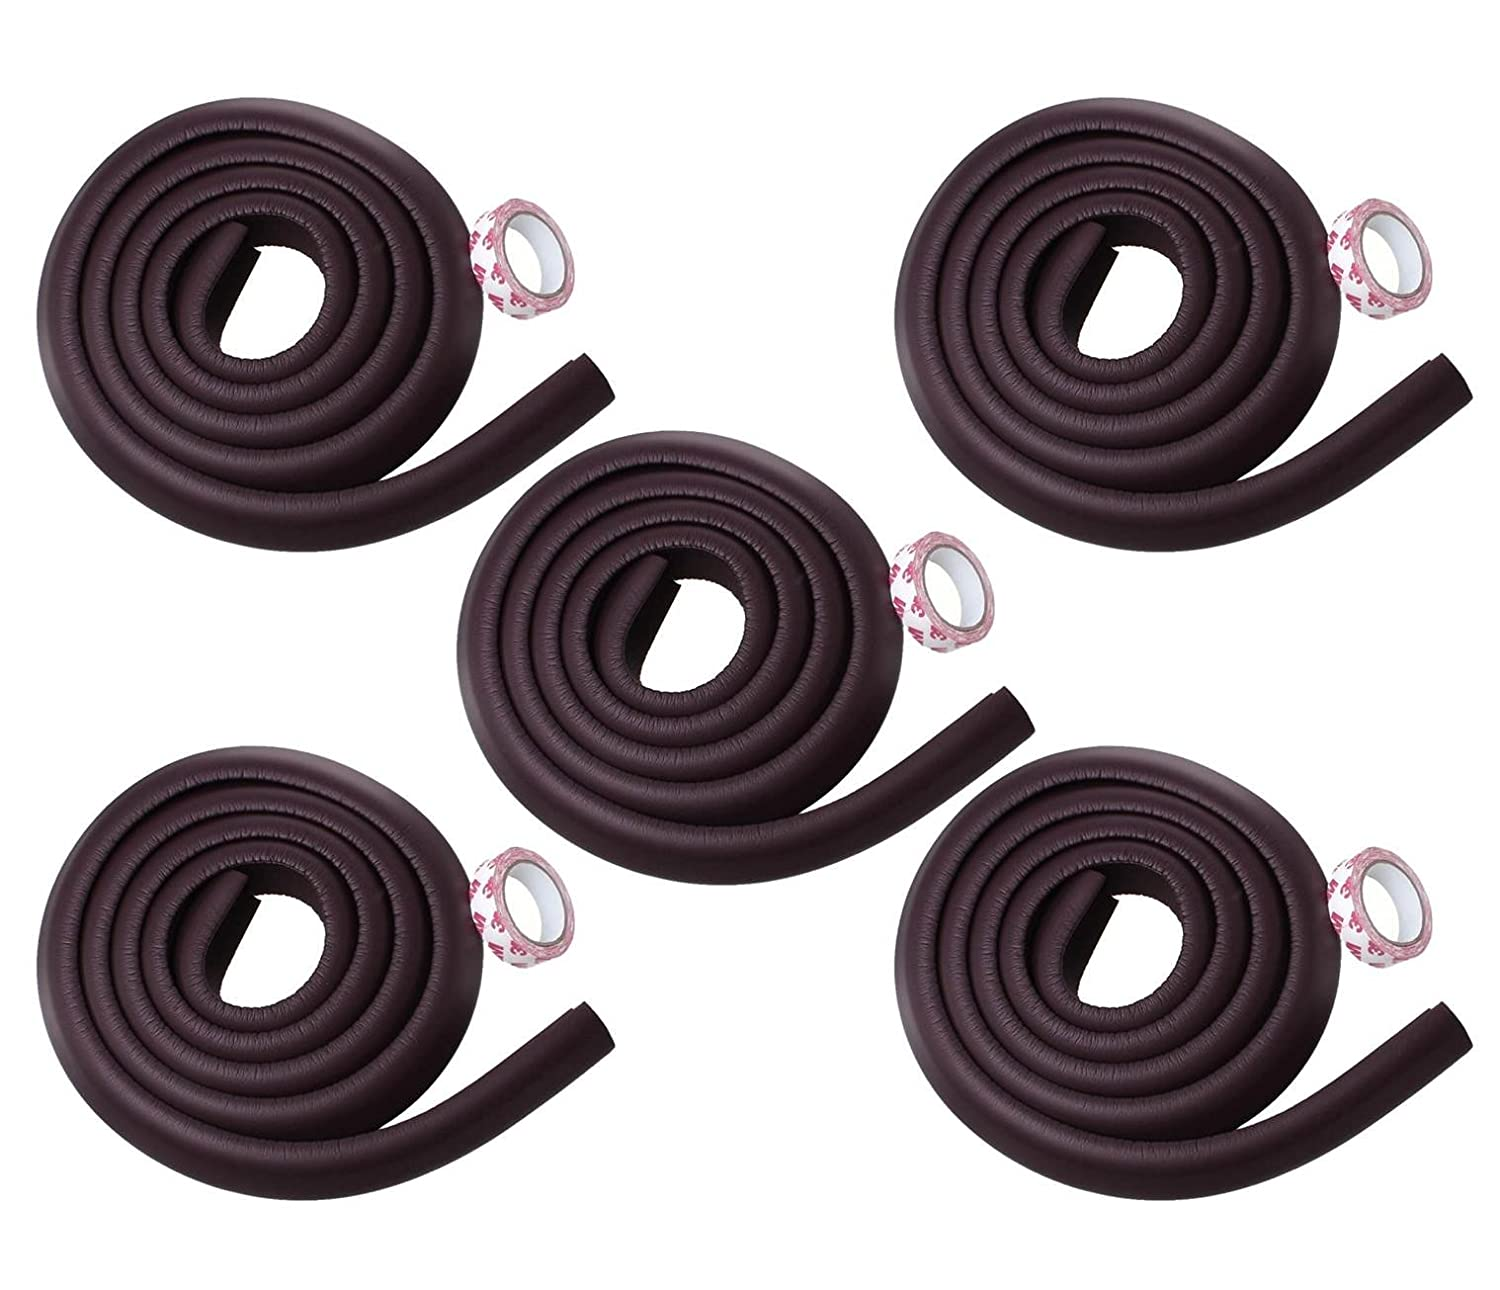 0-Degree Baby Safety Furniture Edge Cushion Corner Cover Guard, Brown, 5 Pieces